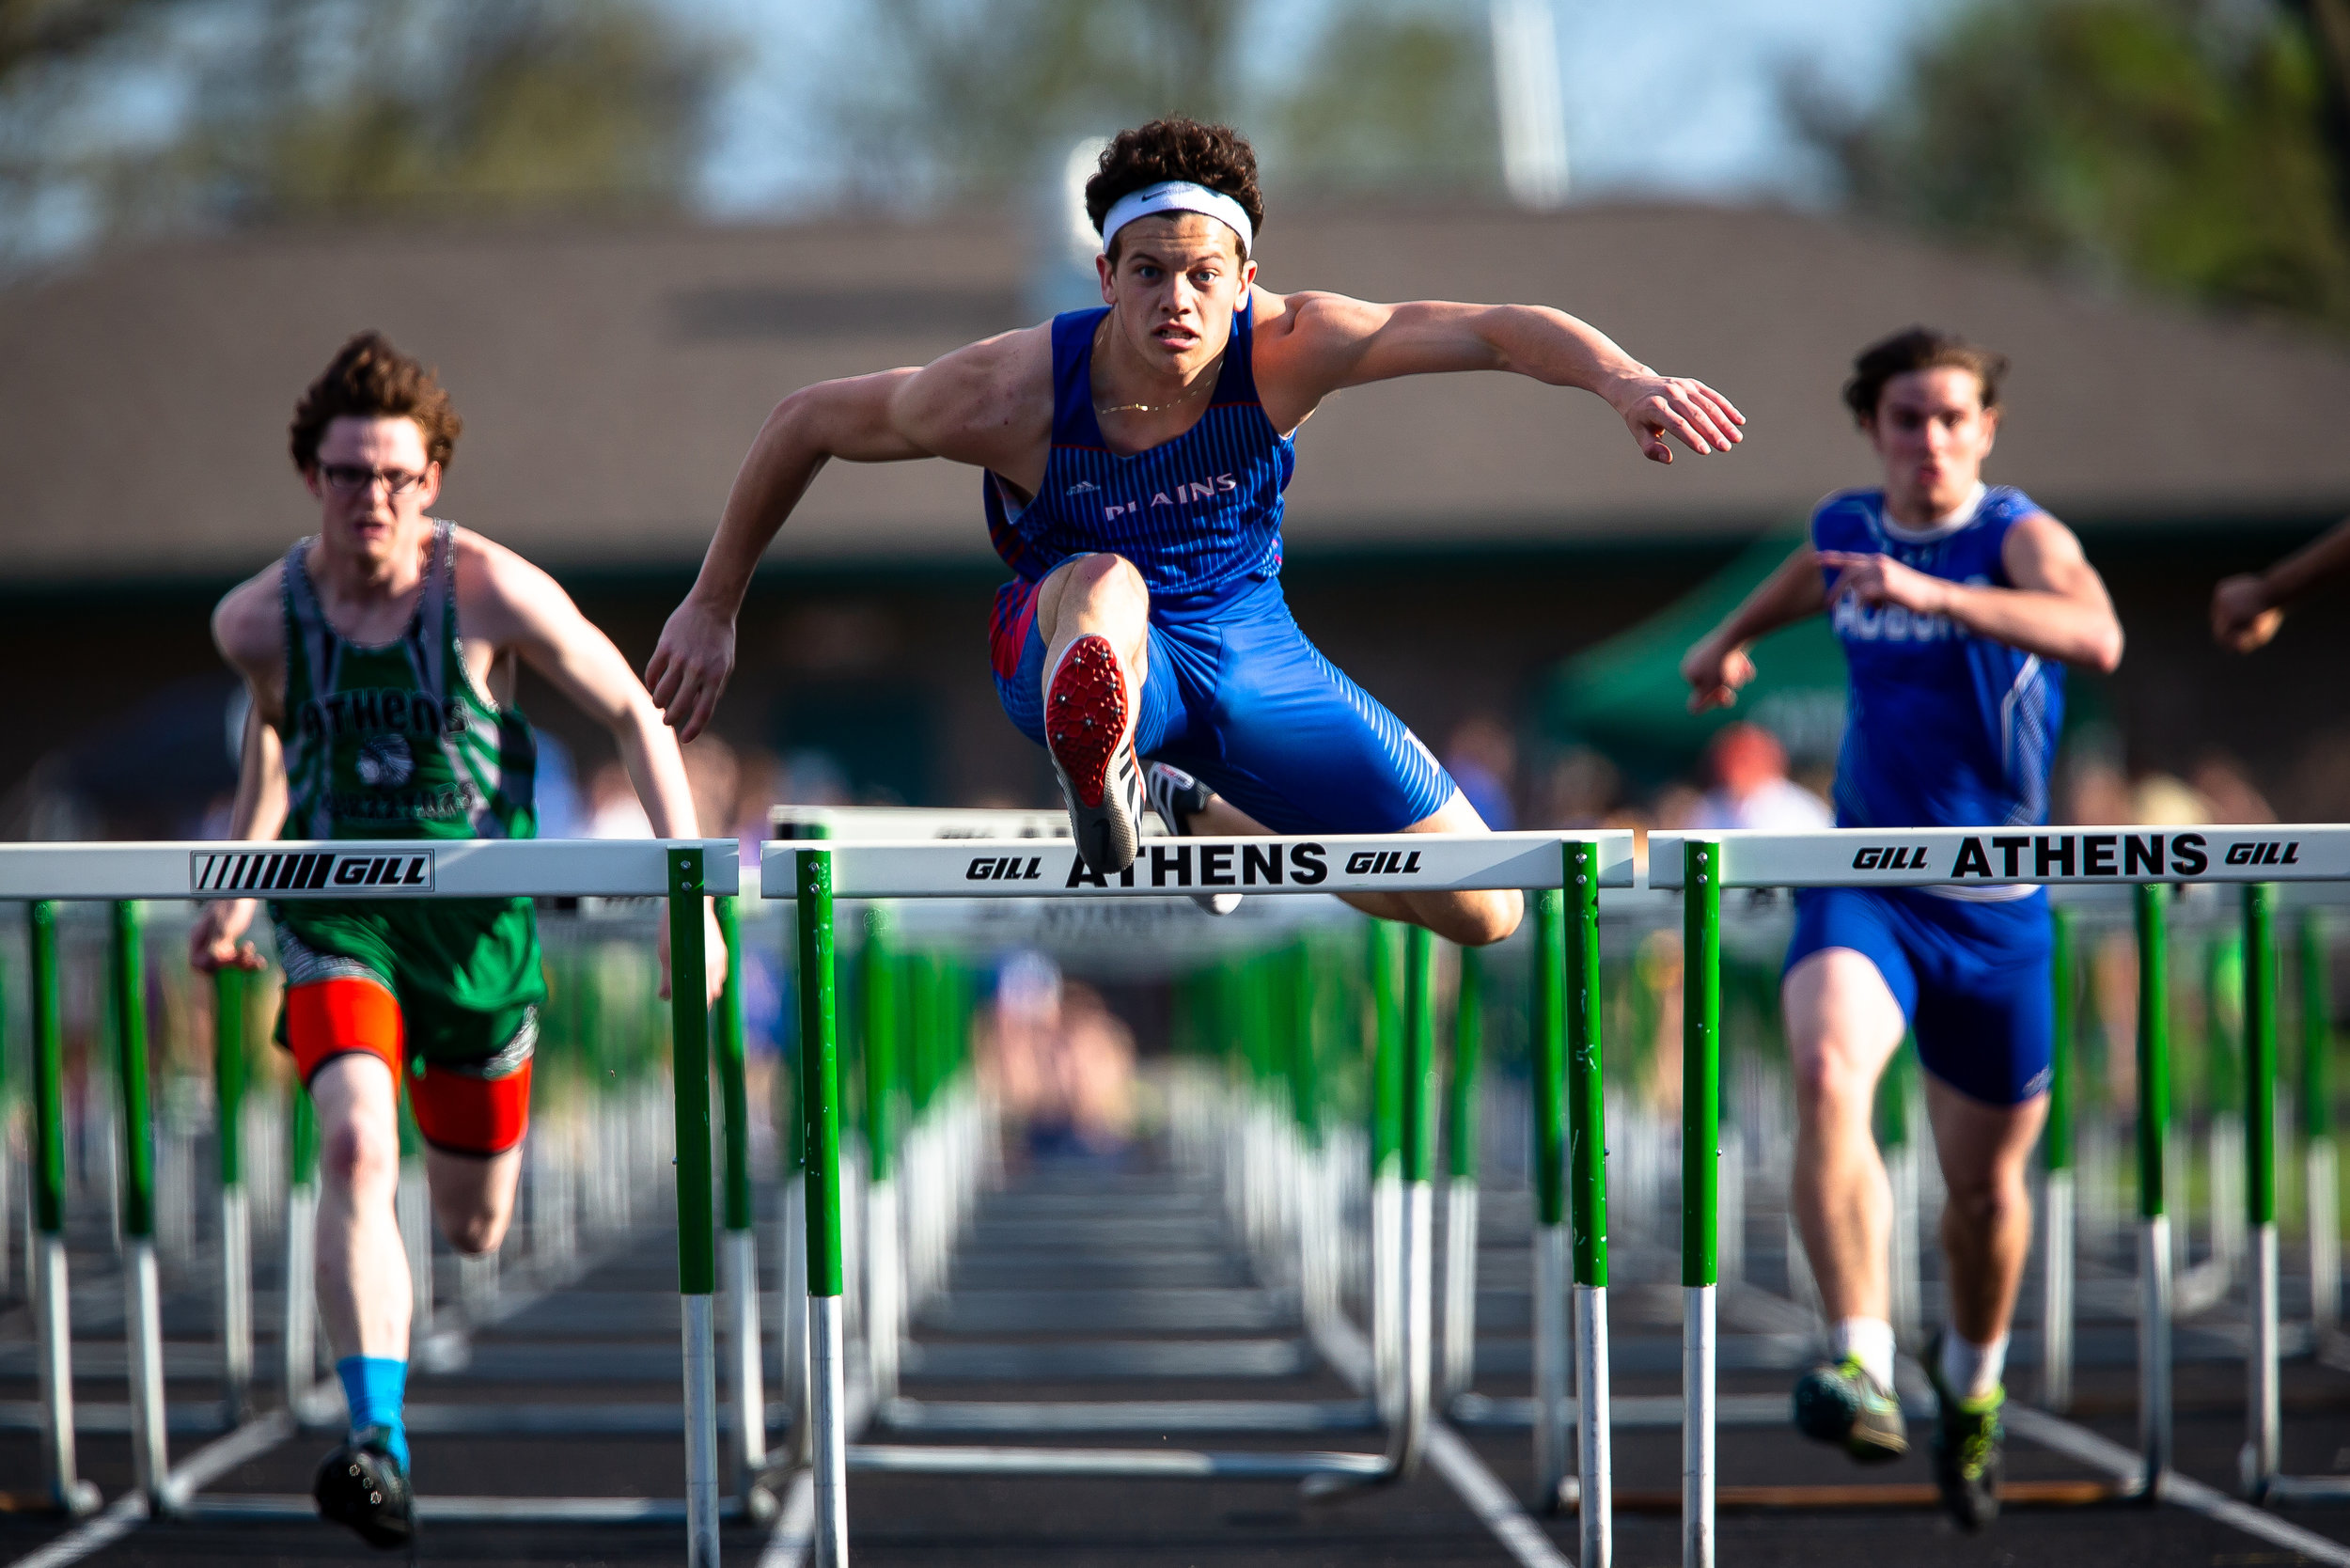 Pleasant Plains' Keigan Halford wins the Boys 110m Hurdles with a time of 15.58 during the Sangamon County Track & Field Meet at Athens High School, Friday, May 4, 2018, in Athens, Ill. [Justin L. Fowler/The State Journal-Register]